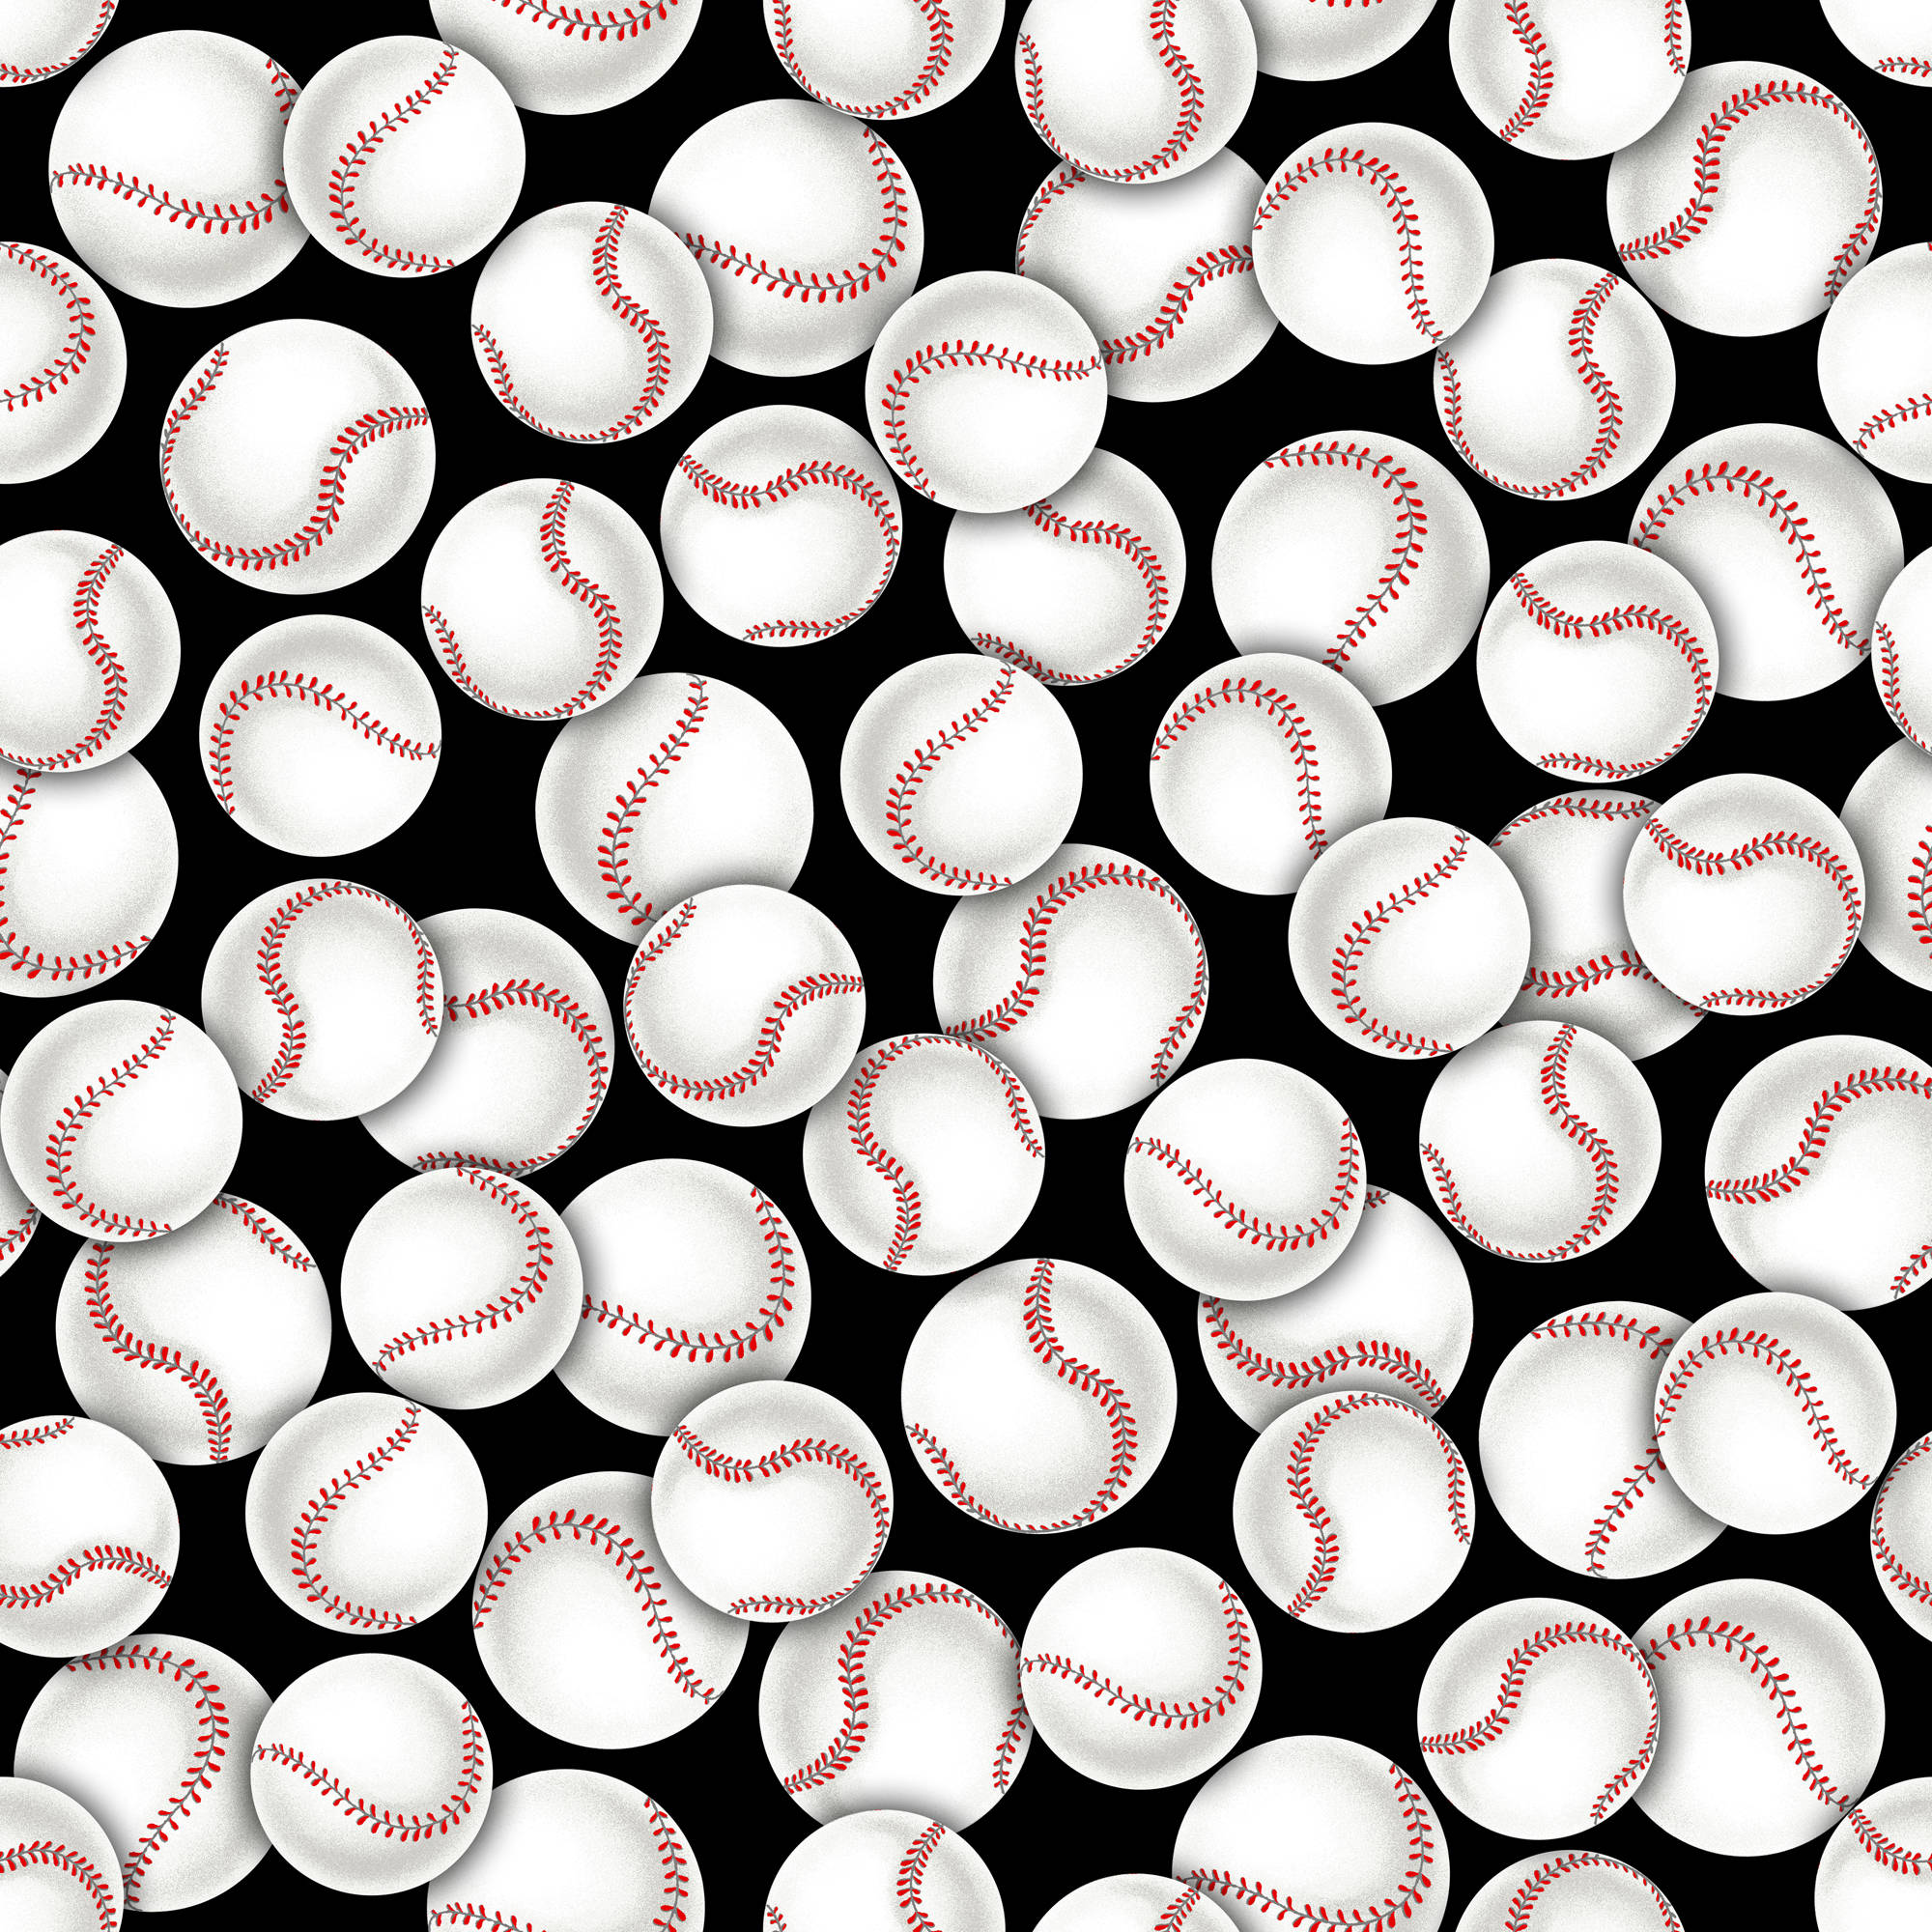 Baseballs Quilting Cotton Fabric By The Yard, 44""